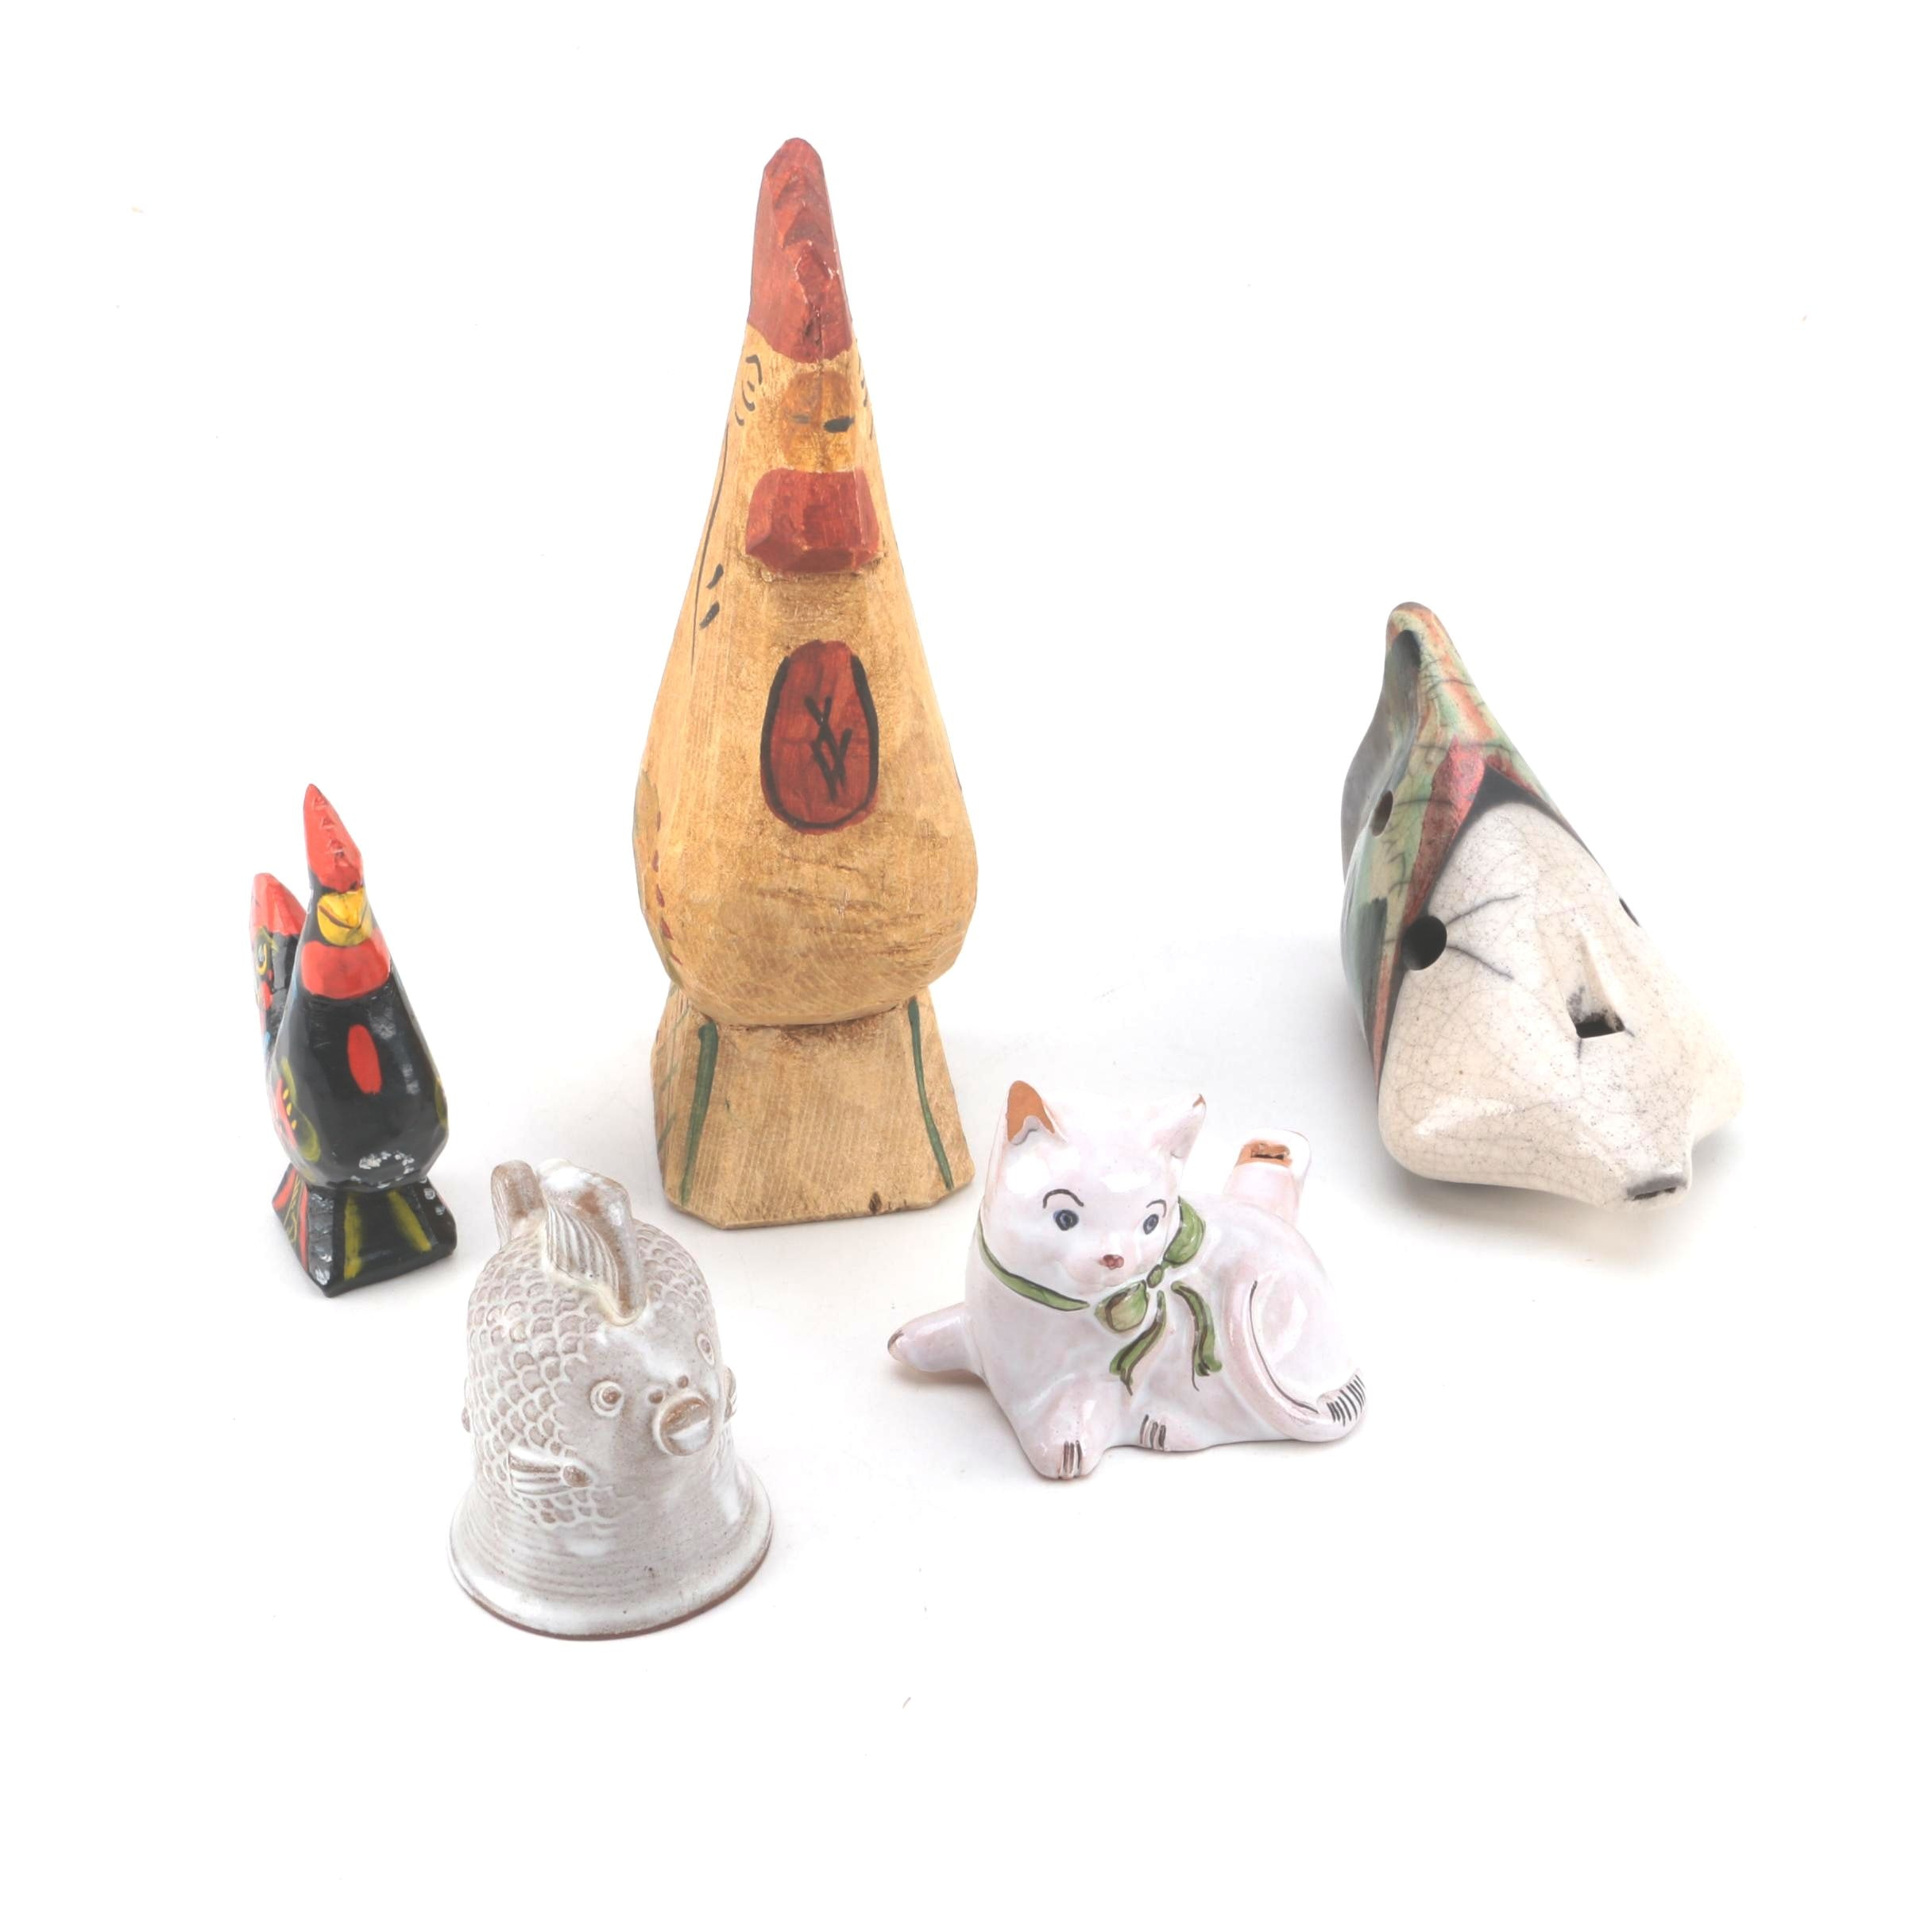 Wood and Ceramic Animal Figurines